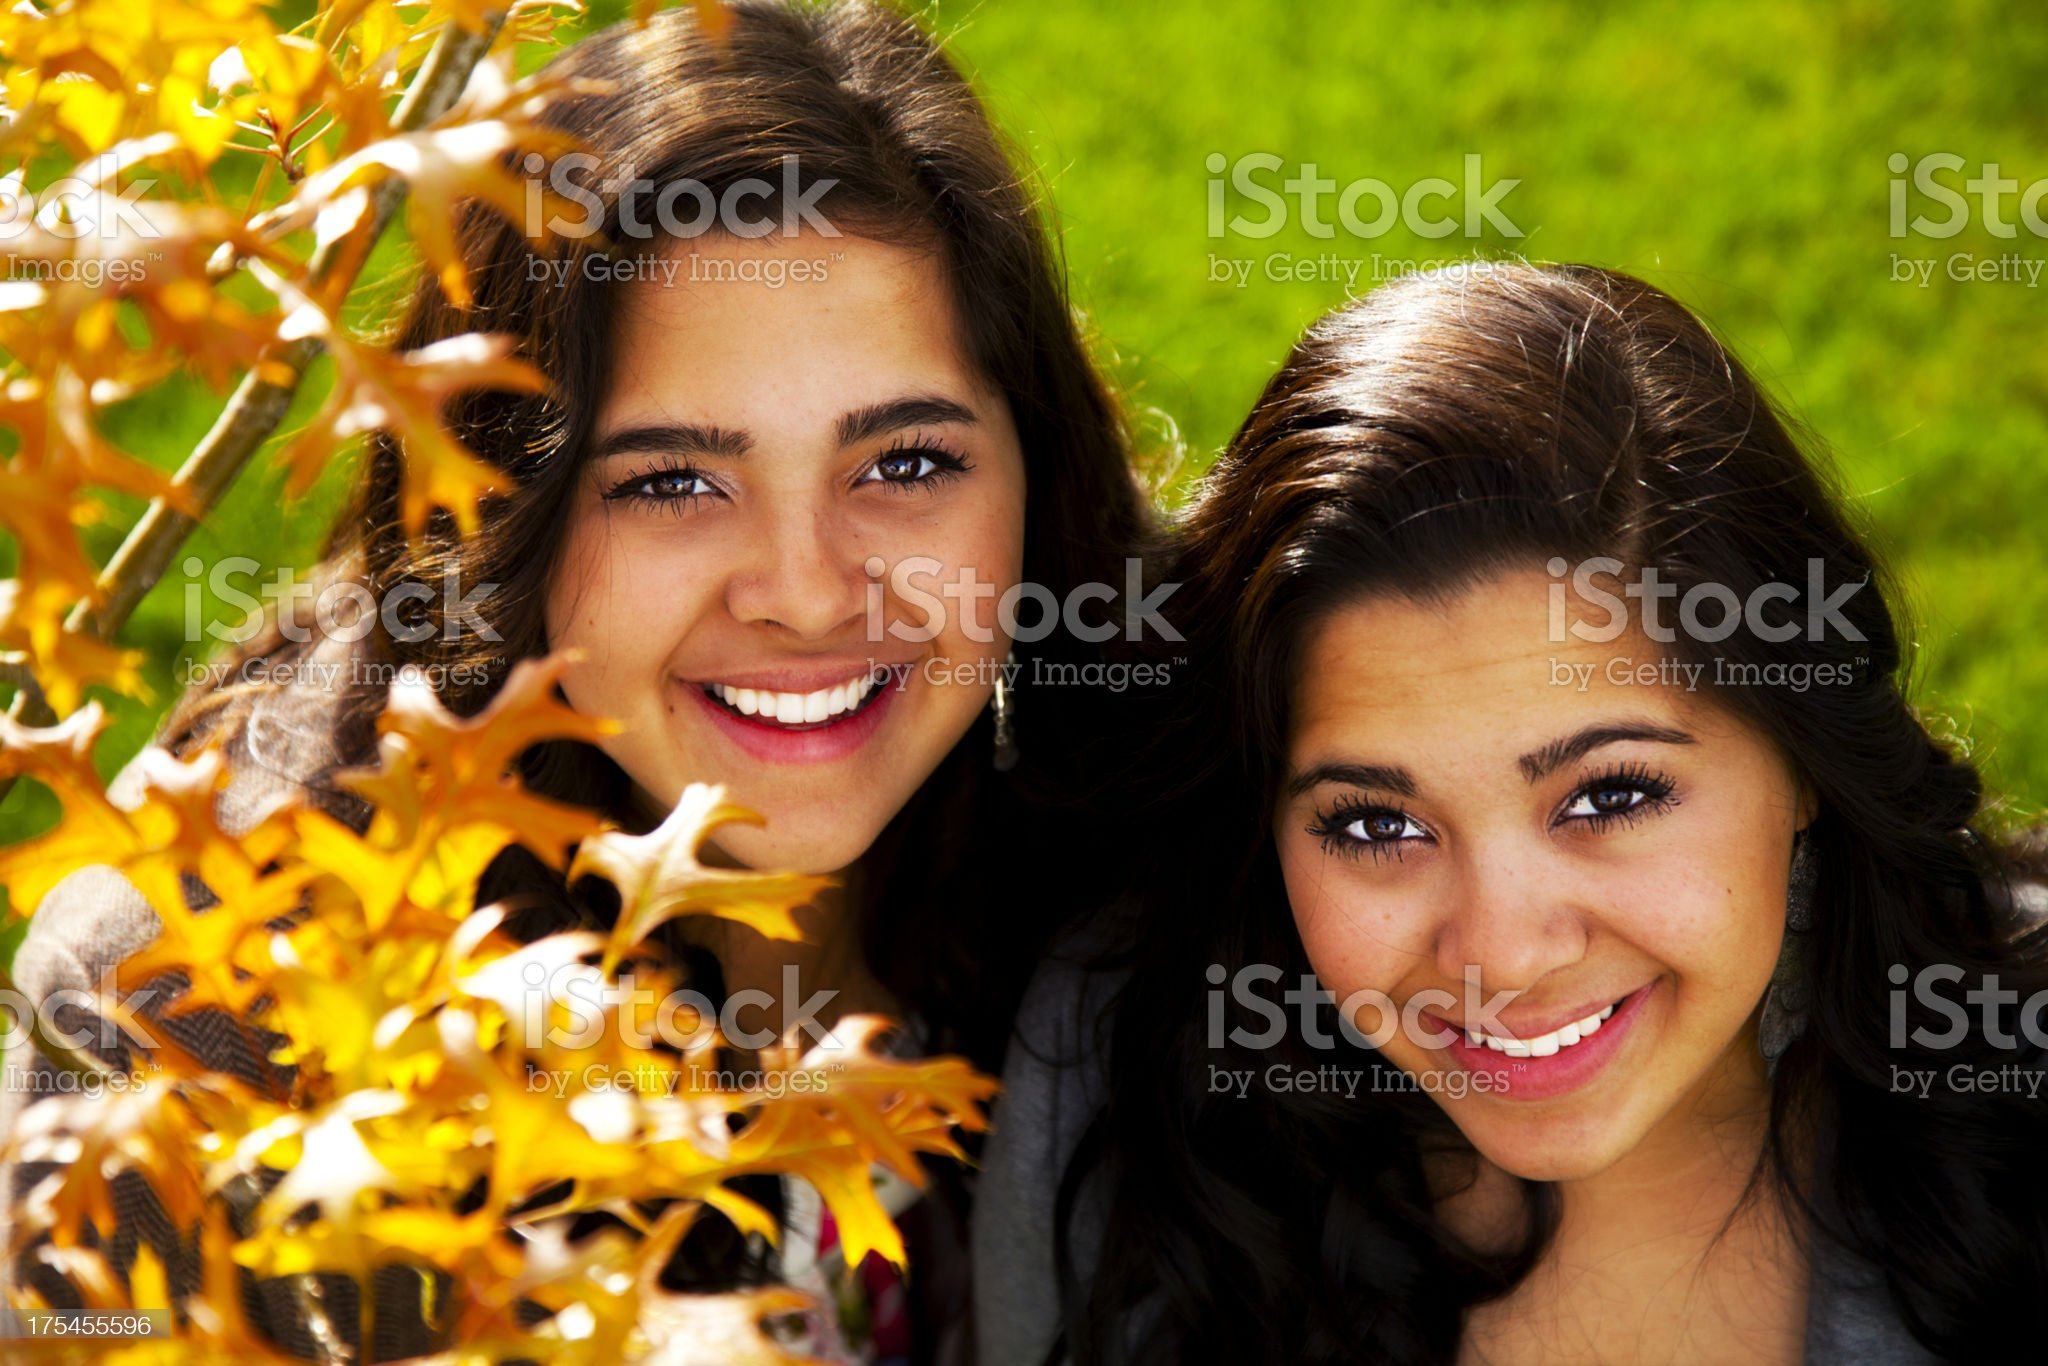 Friendly Latina Twins in Colorful, Natural Setting royalty-free stock photo